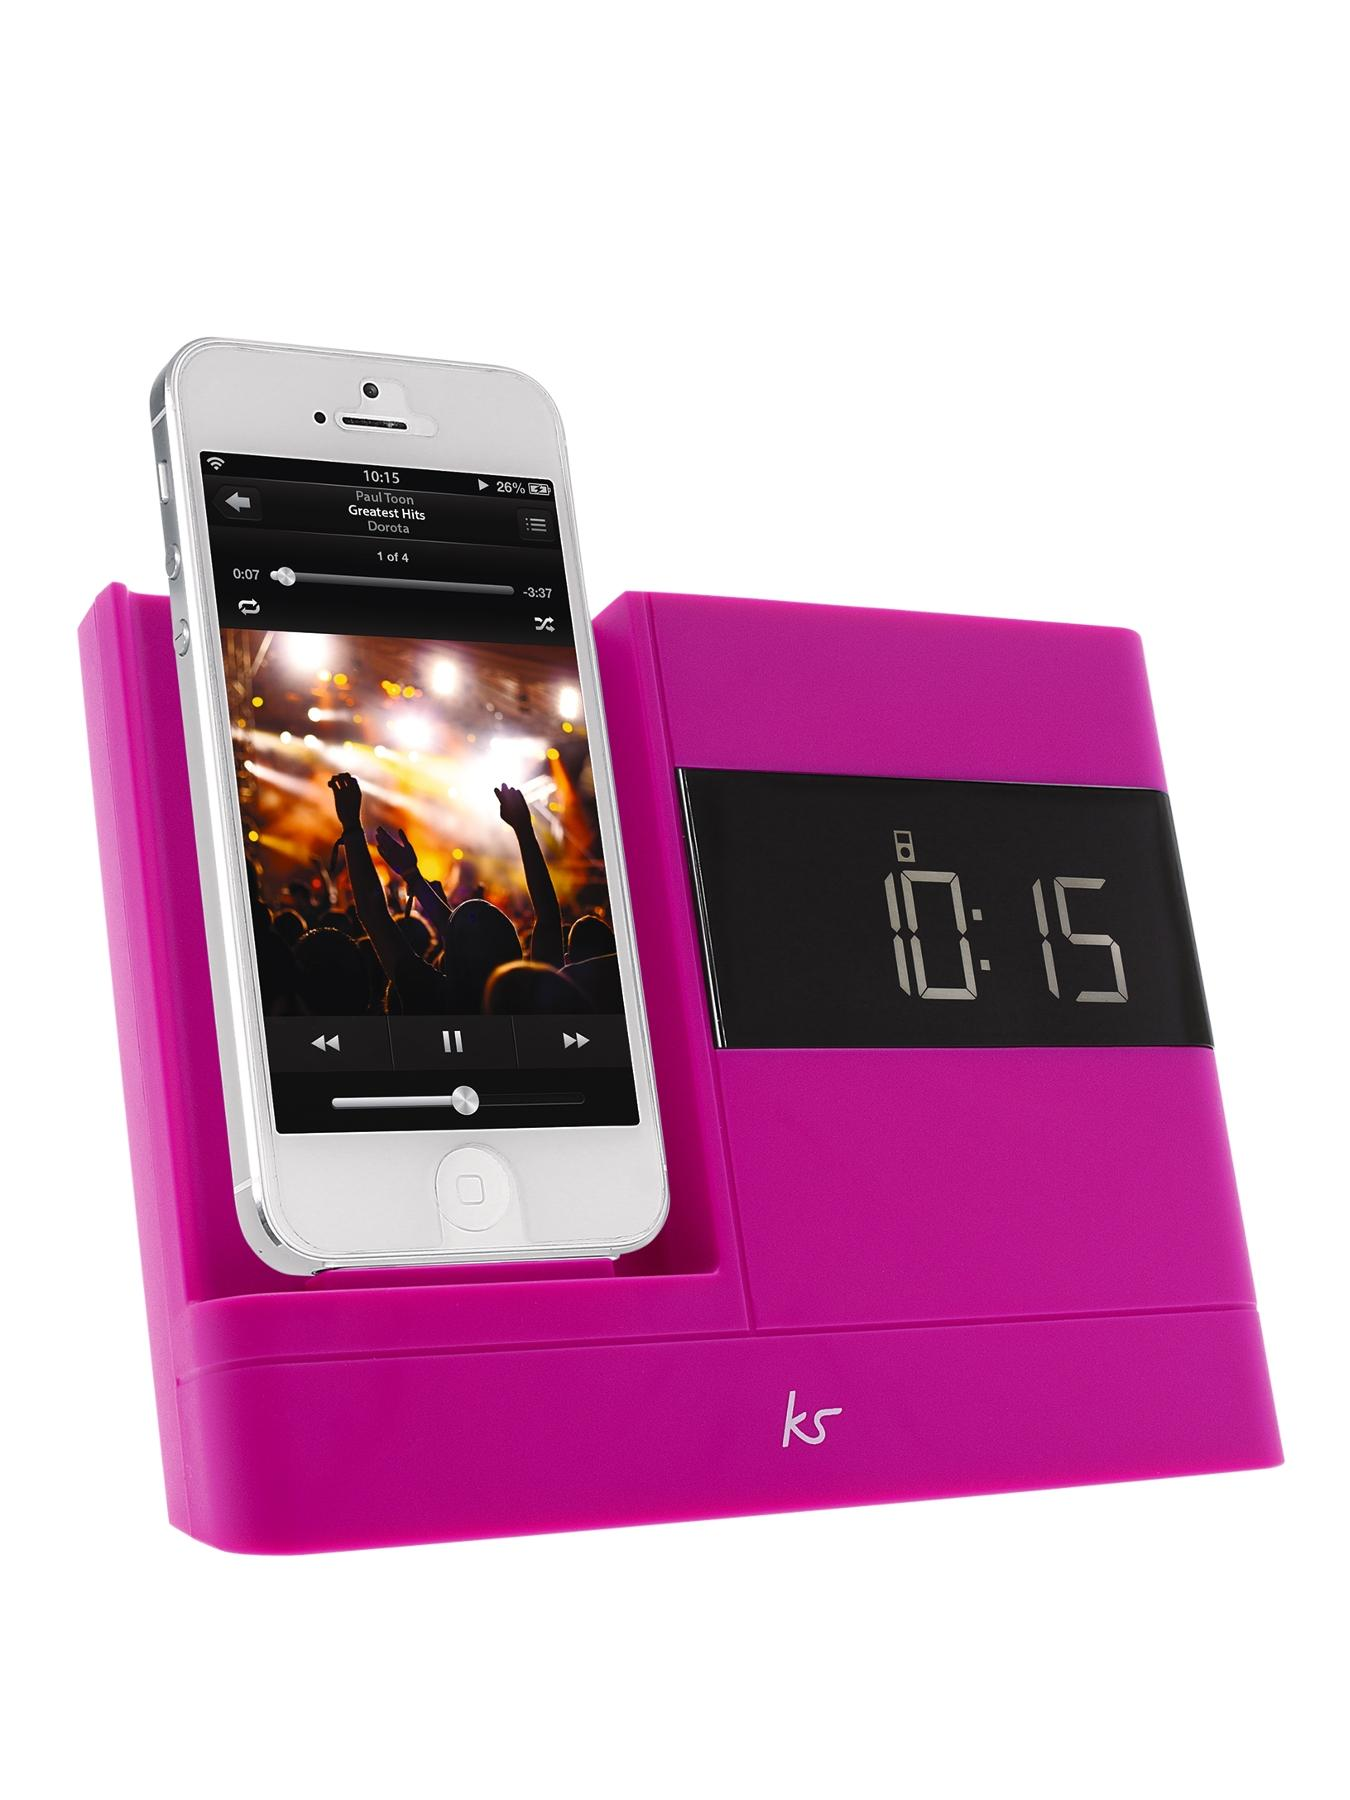 X-Dock 2 8 Pin Lightning Connector Clock Radio Dock for iPhone 5 - Pink